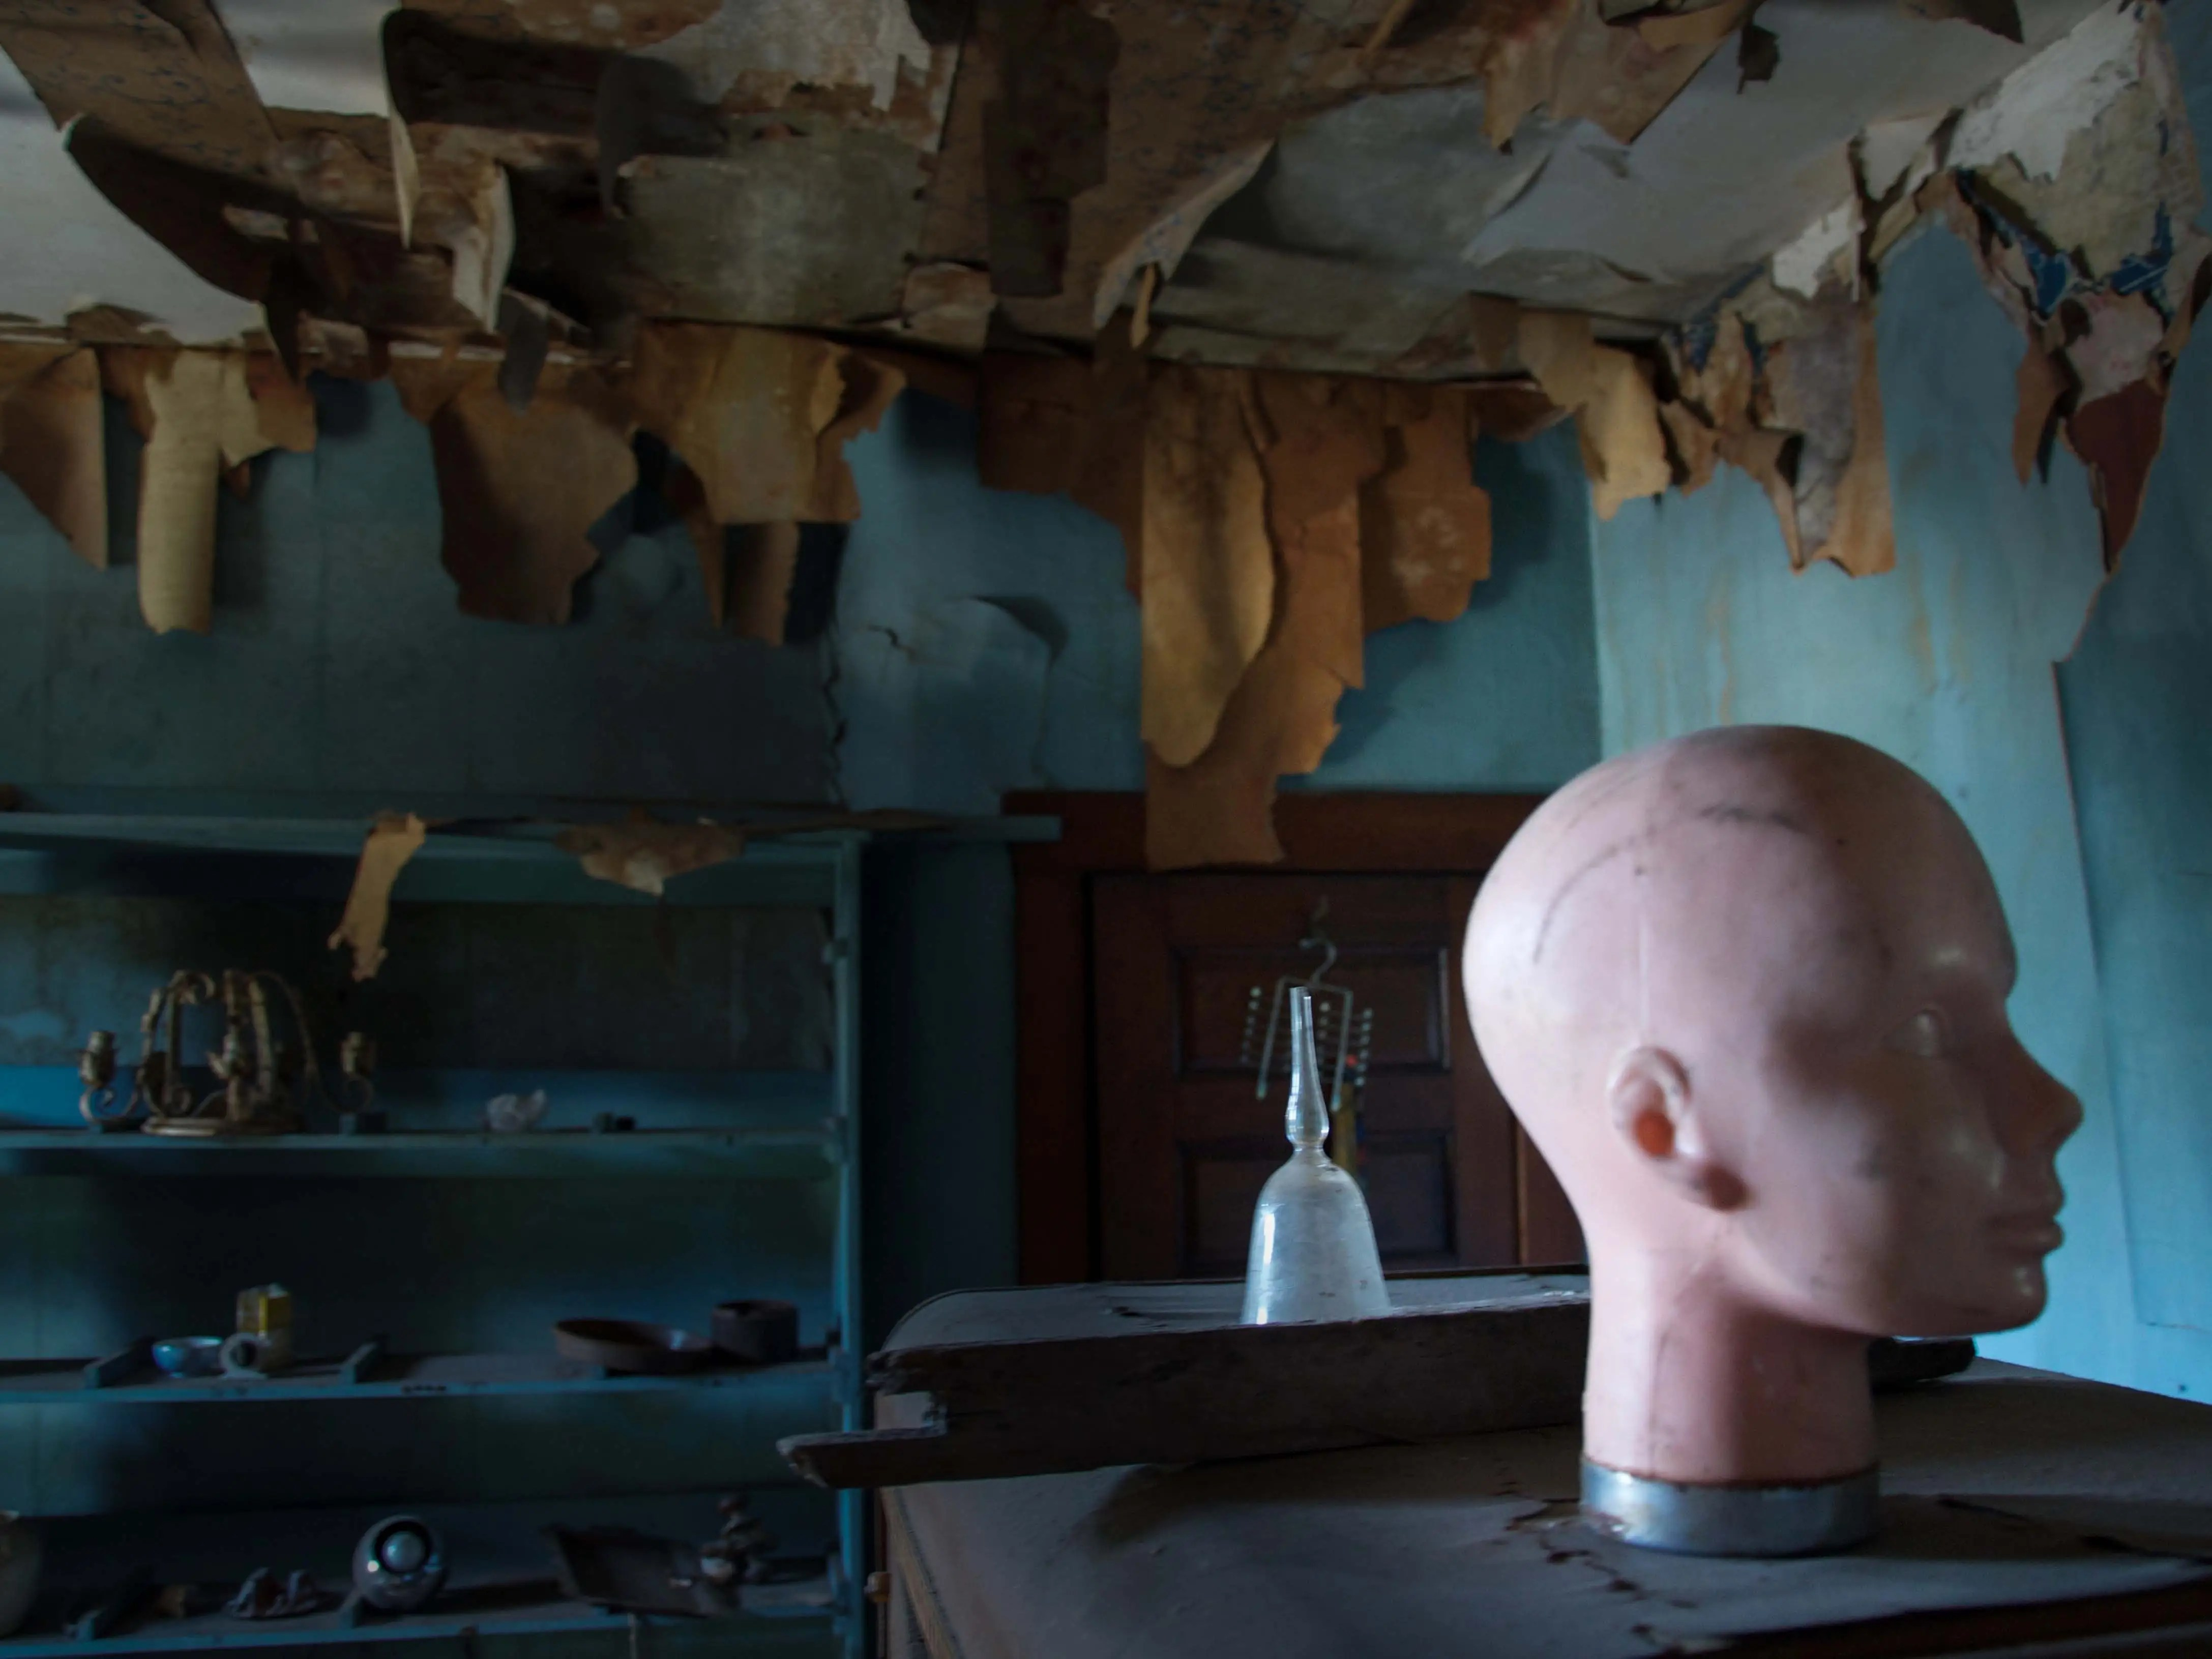 This creepy Philadelphia mansion is full of doll parts and neatly organized metal tools. All it needs is the matching serial killer.